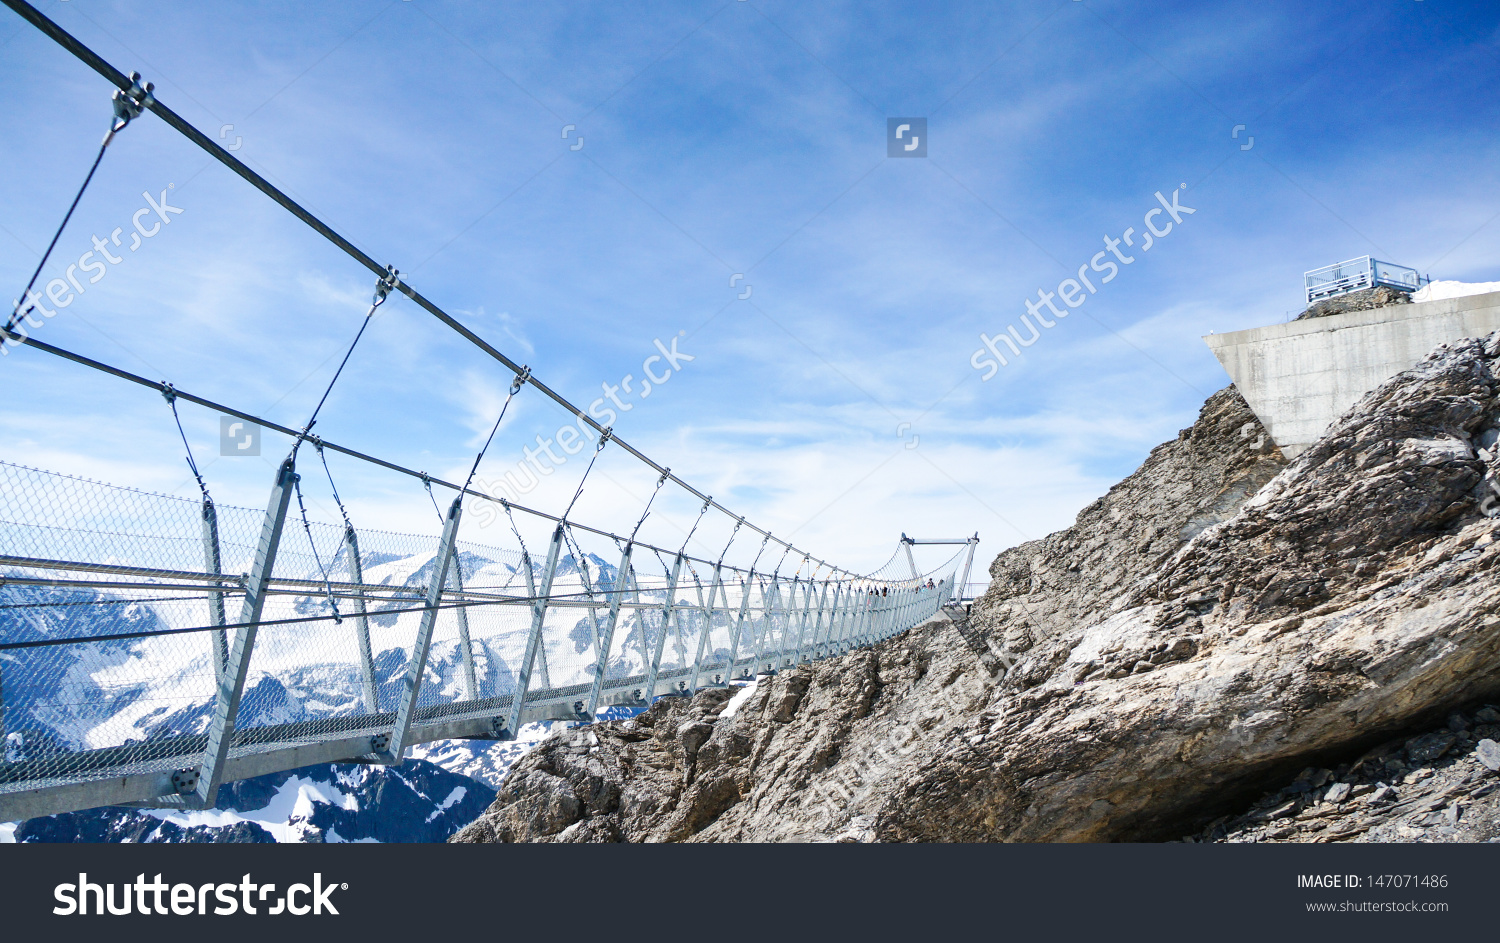 Titlis Cliff Walk Stock Photo 147071486.